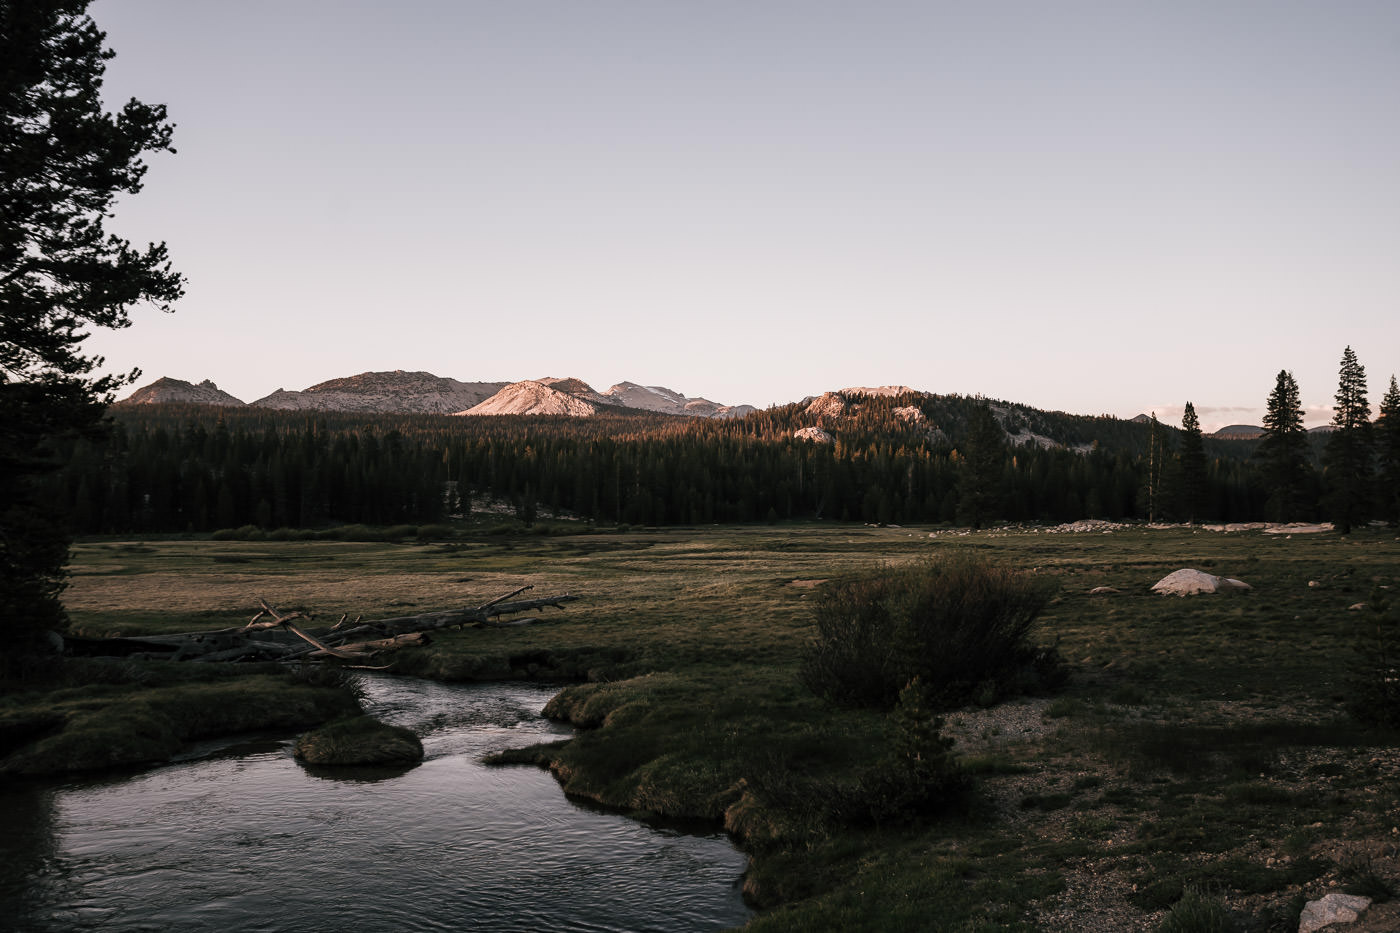 This beautiful quiet meadow at sunset located in the high Sierra makes for the perfect intimate elopement destination.